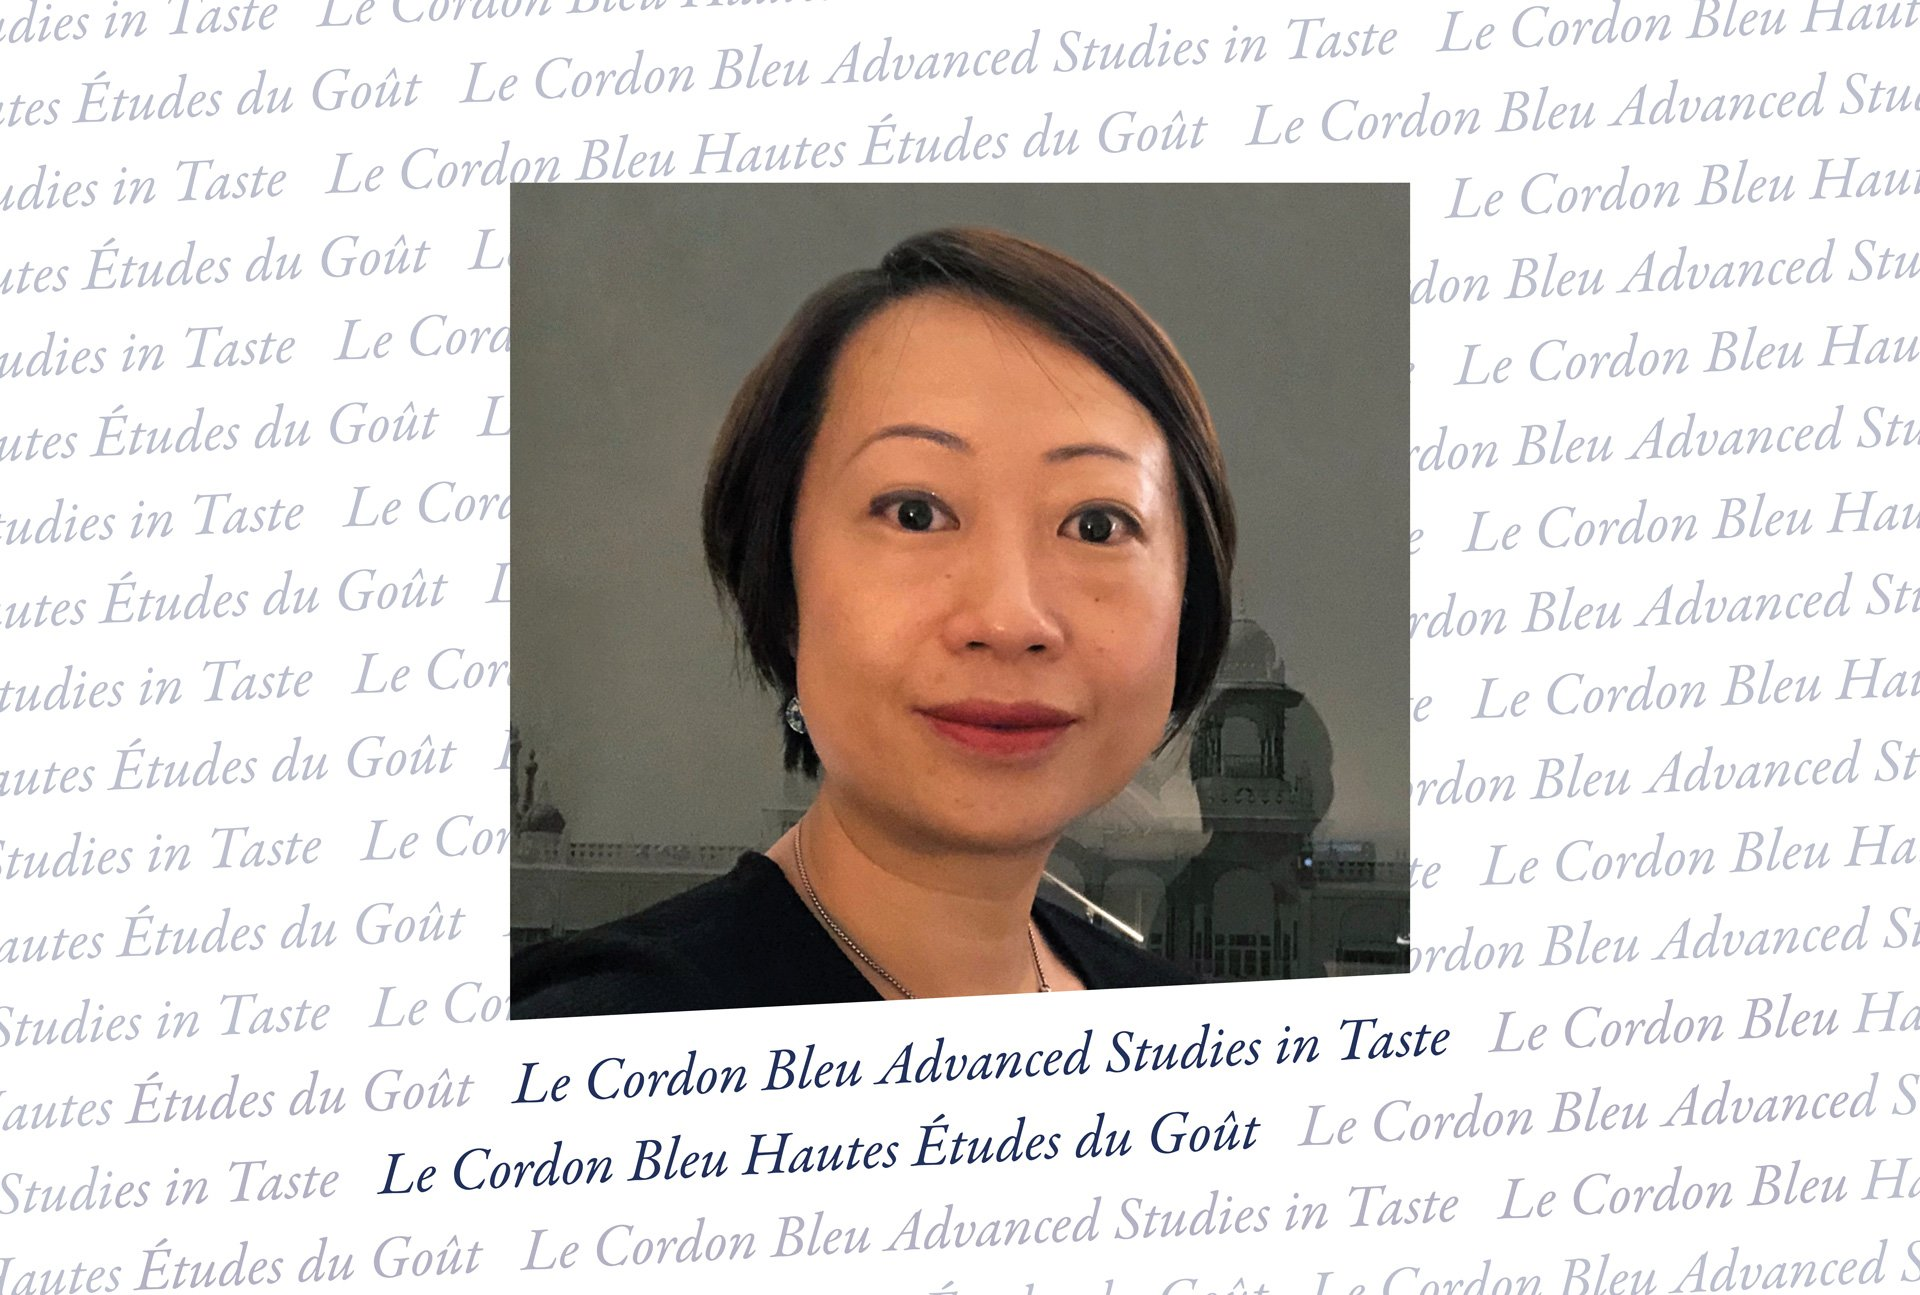 Le Cordon Bleu Advanced Studies in Taste thesis - Christine Law